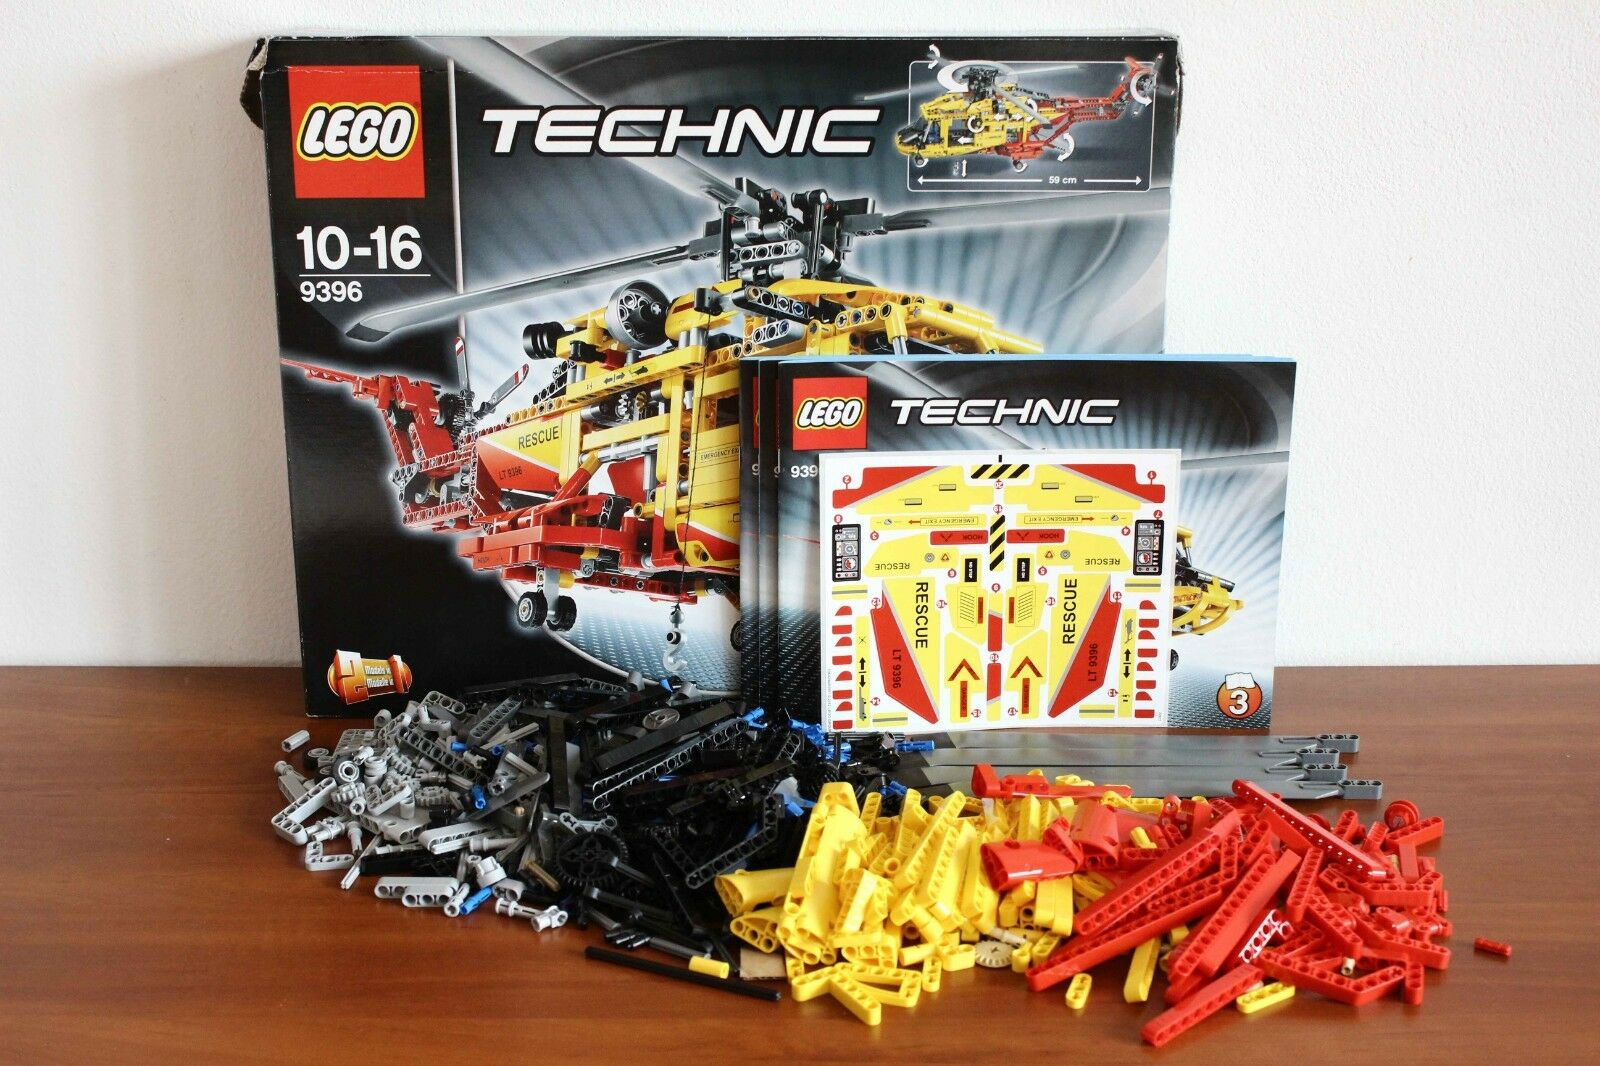 Lego Technic Model Airport Set 9396-1 Helicopter 100% cmpl. + instr. + box